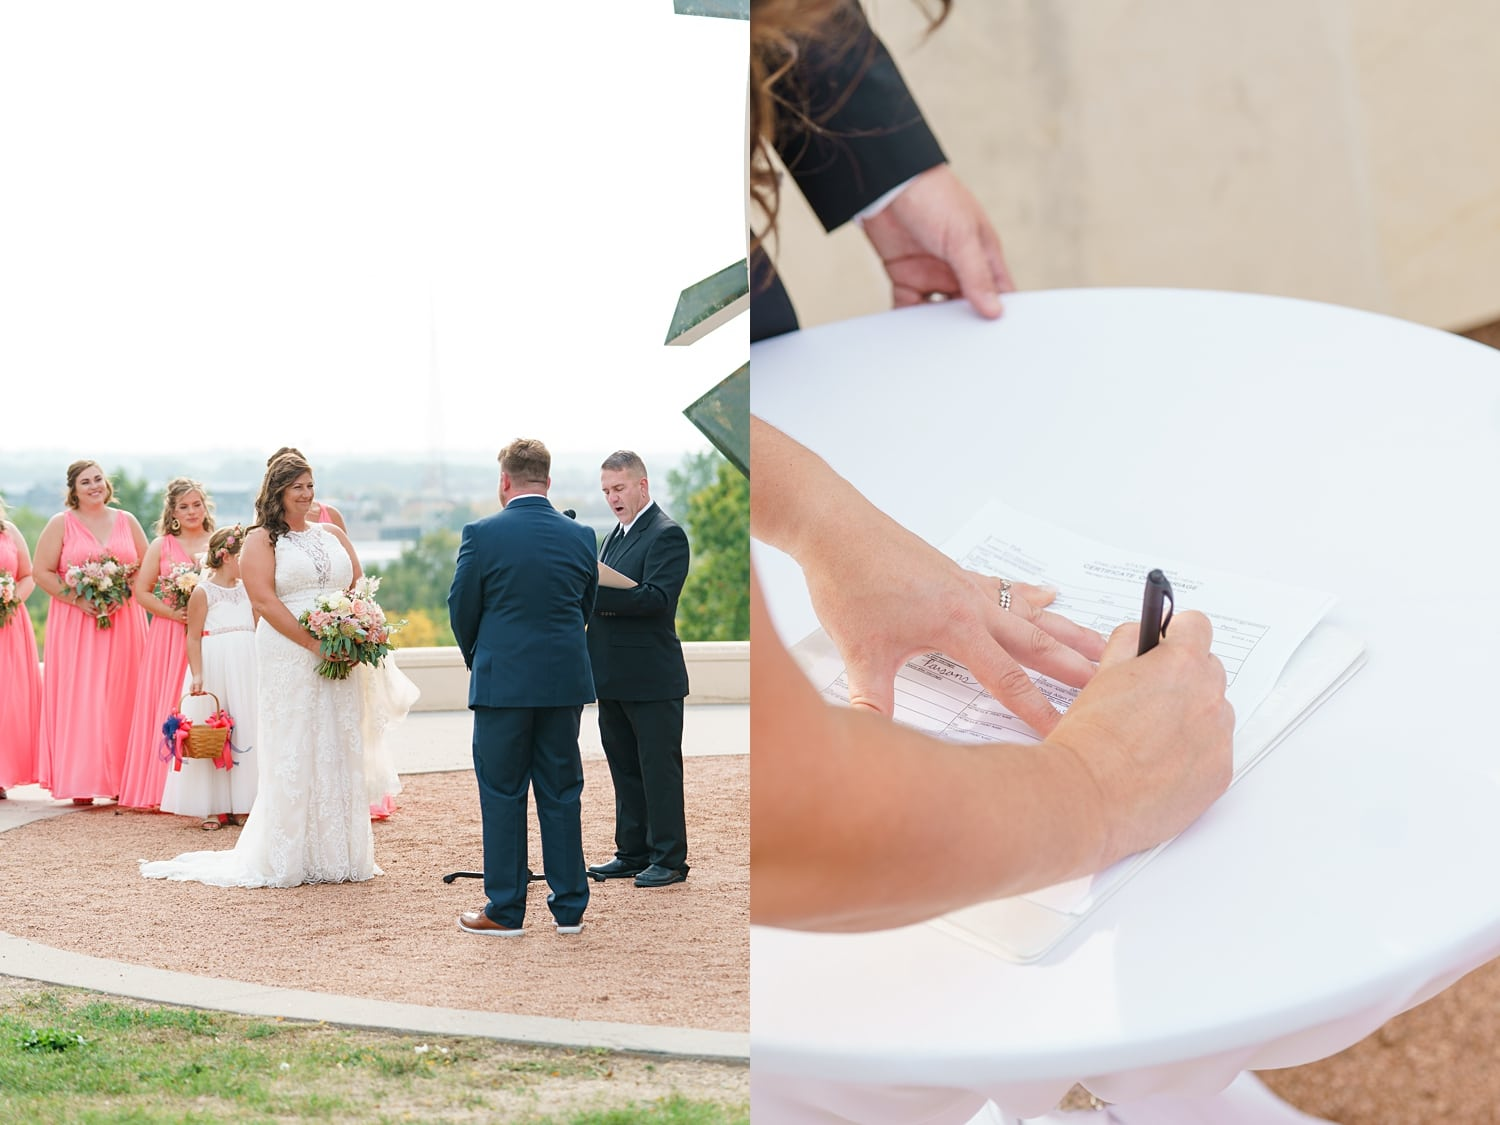 signing the wedding certificate during the ceremony